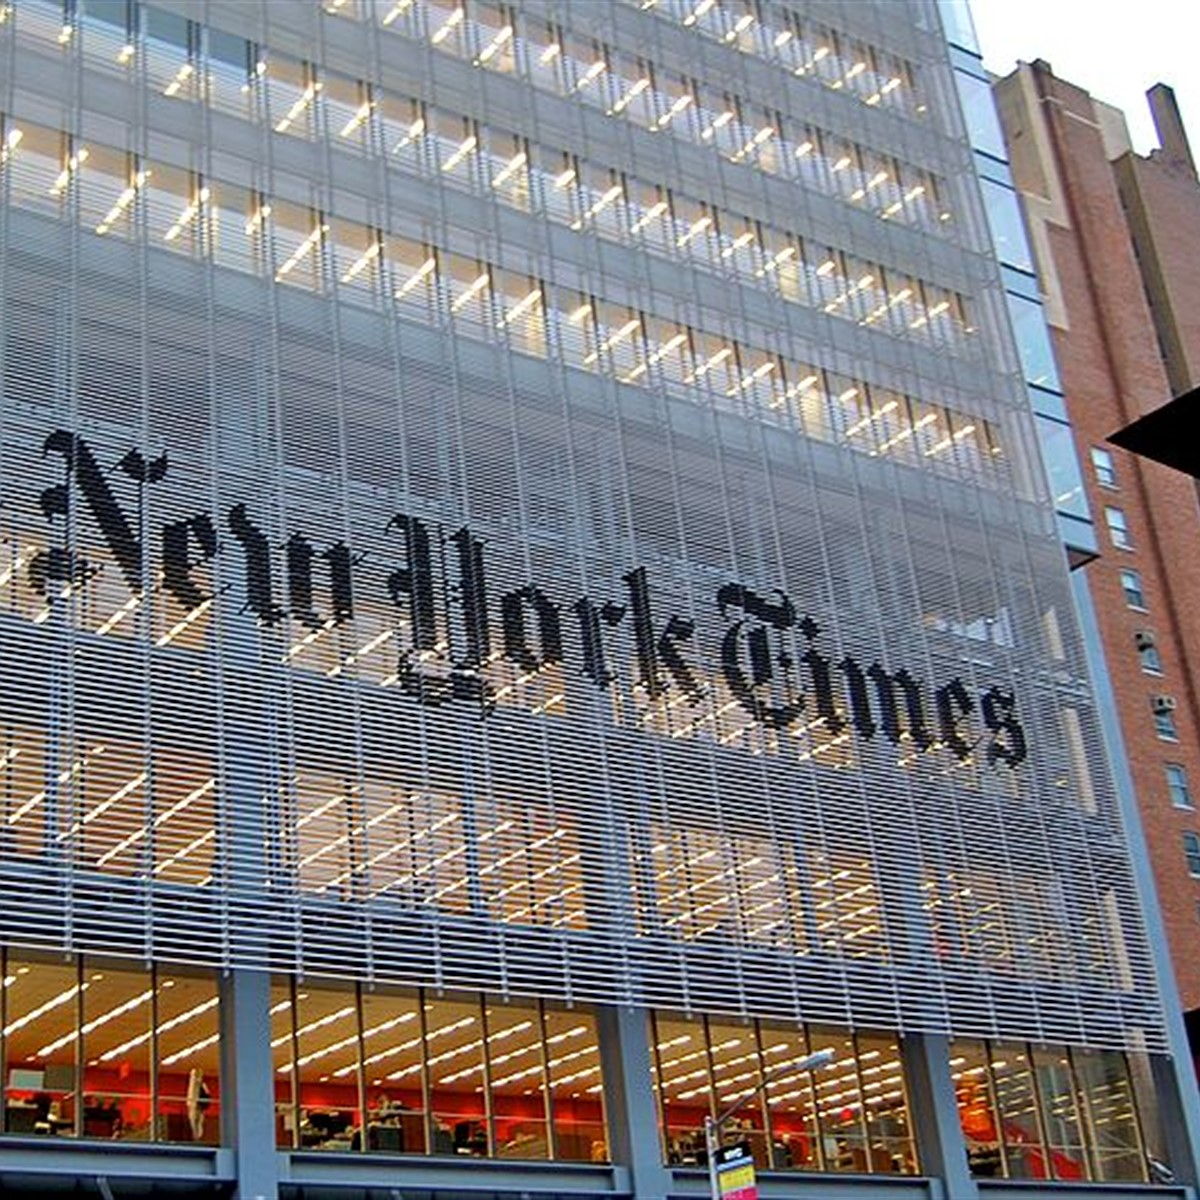 Photographer sues New York Times over age discrimination and